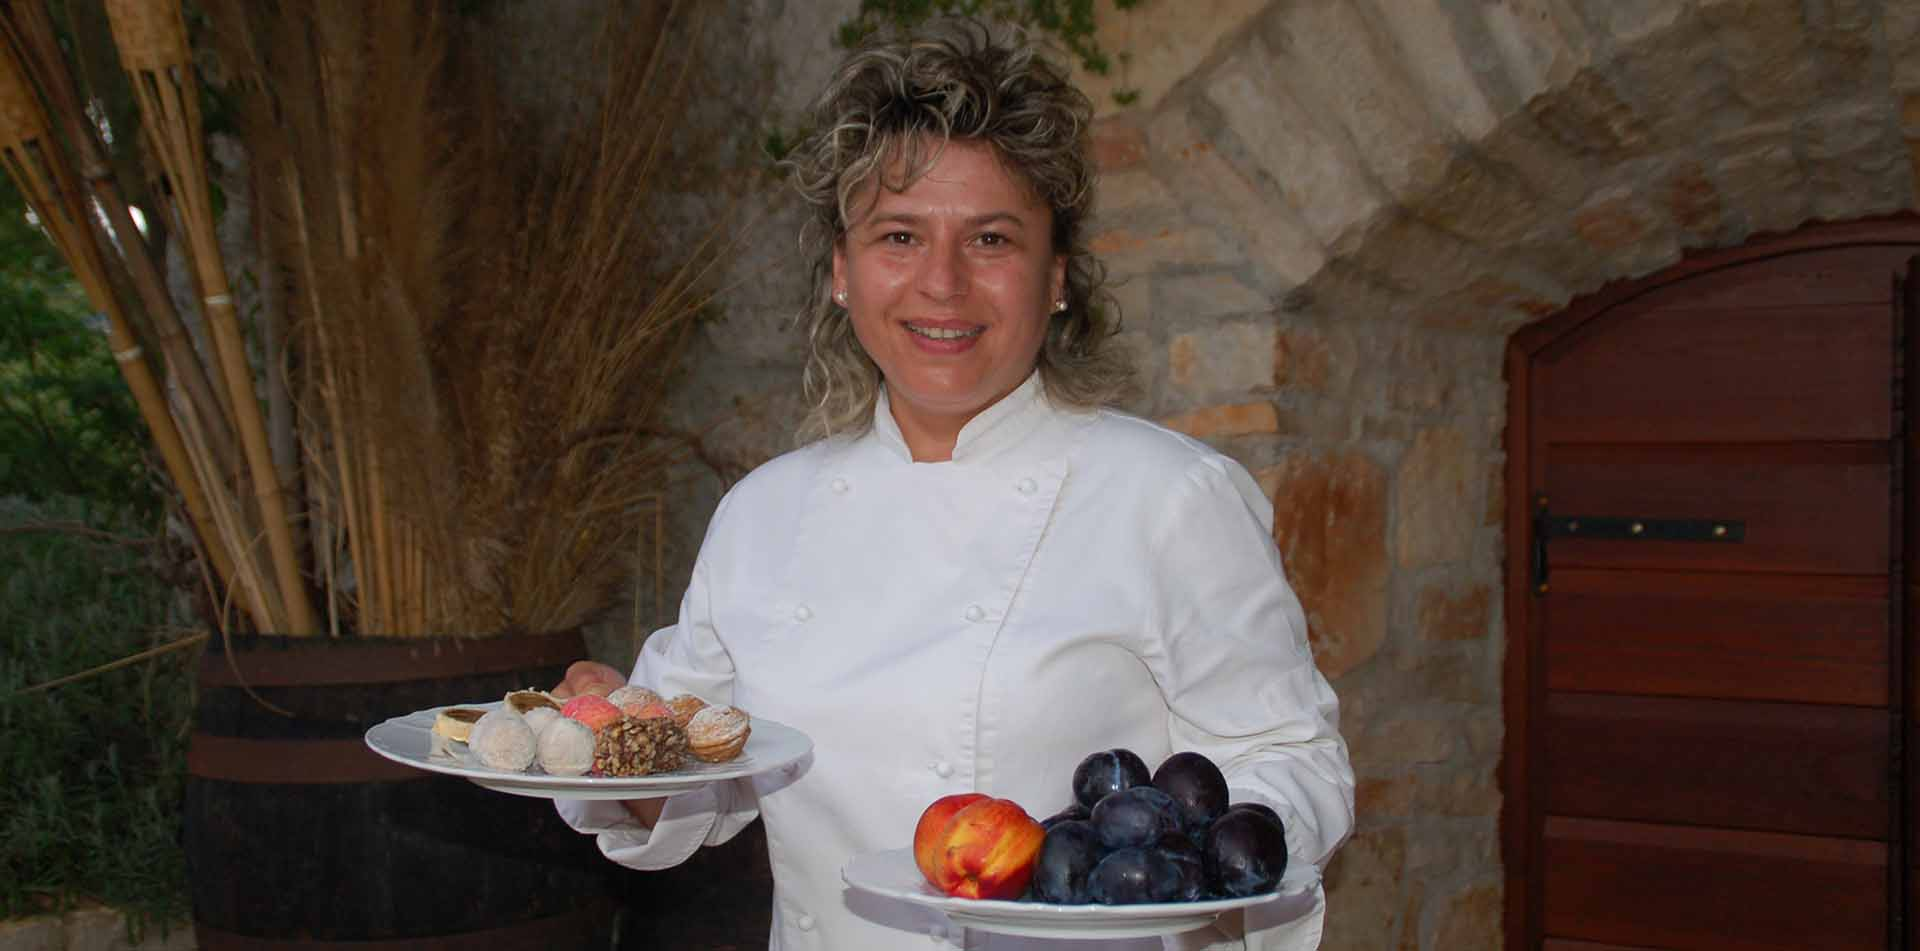 Europe Croatia Istria happy female chef carrying plates of fruit and pastries - luxury vacation destinations